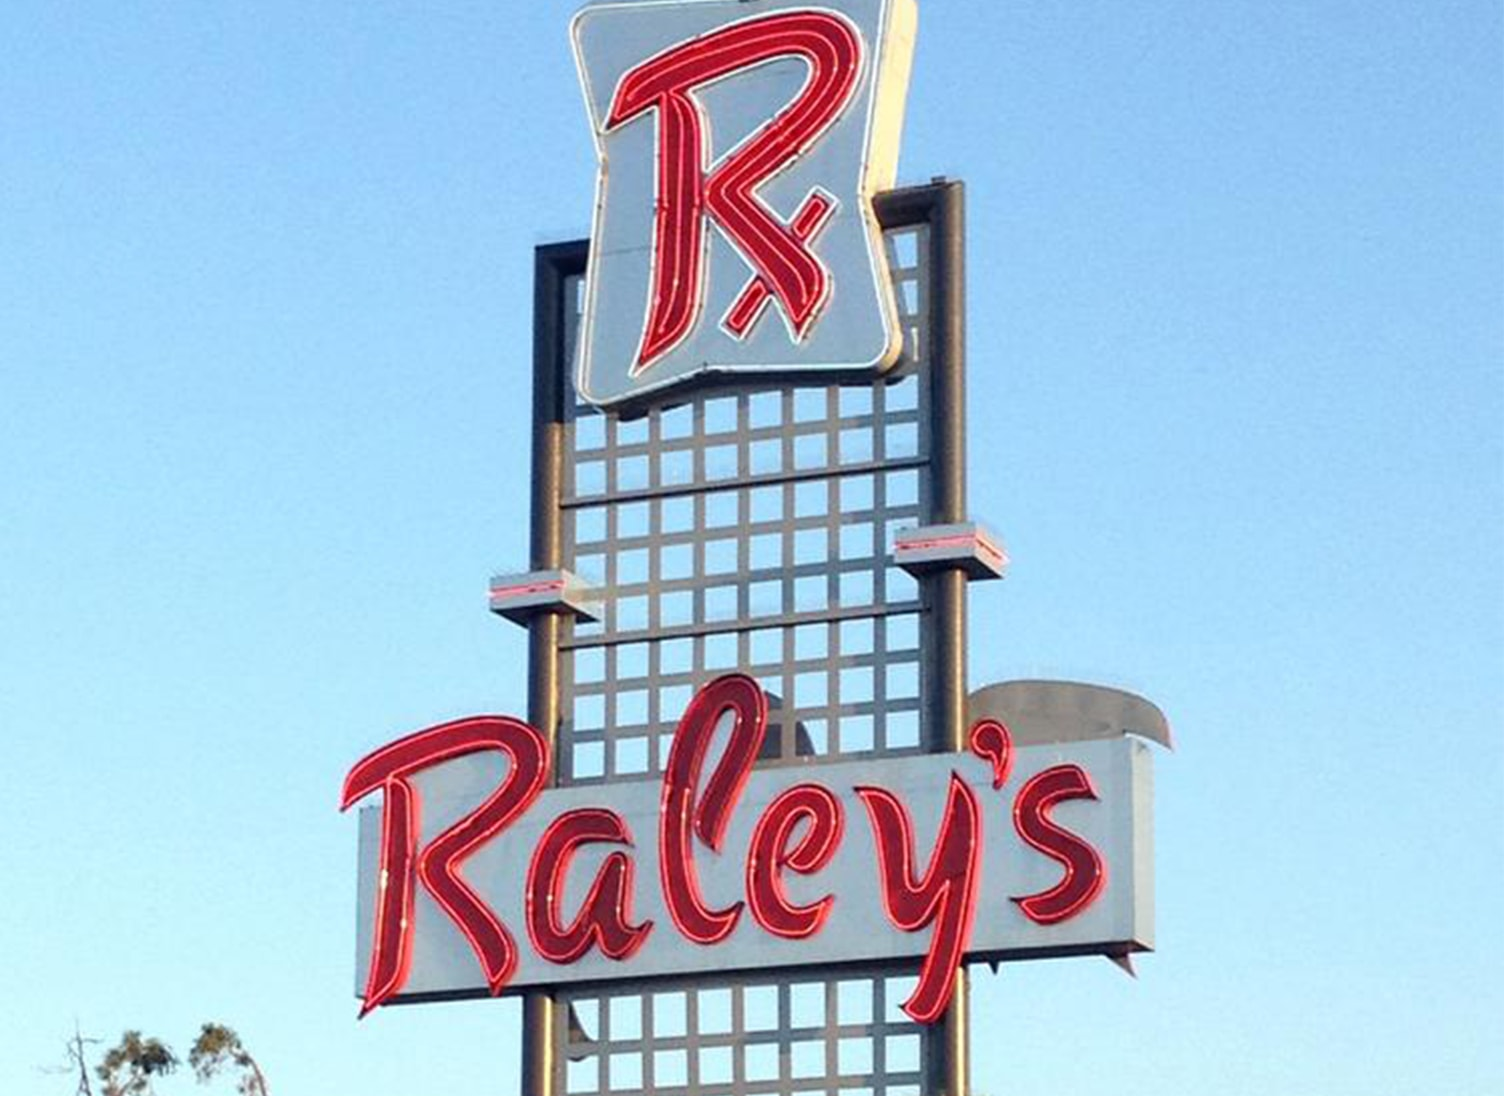 raley's signage